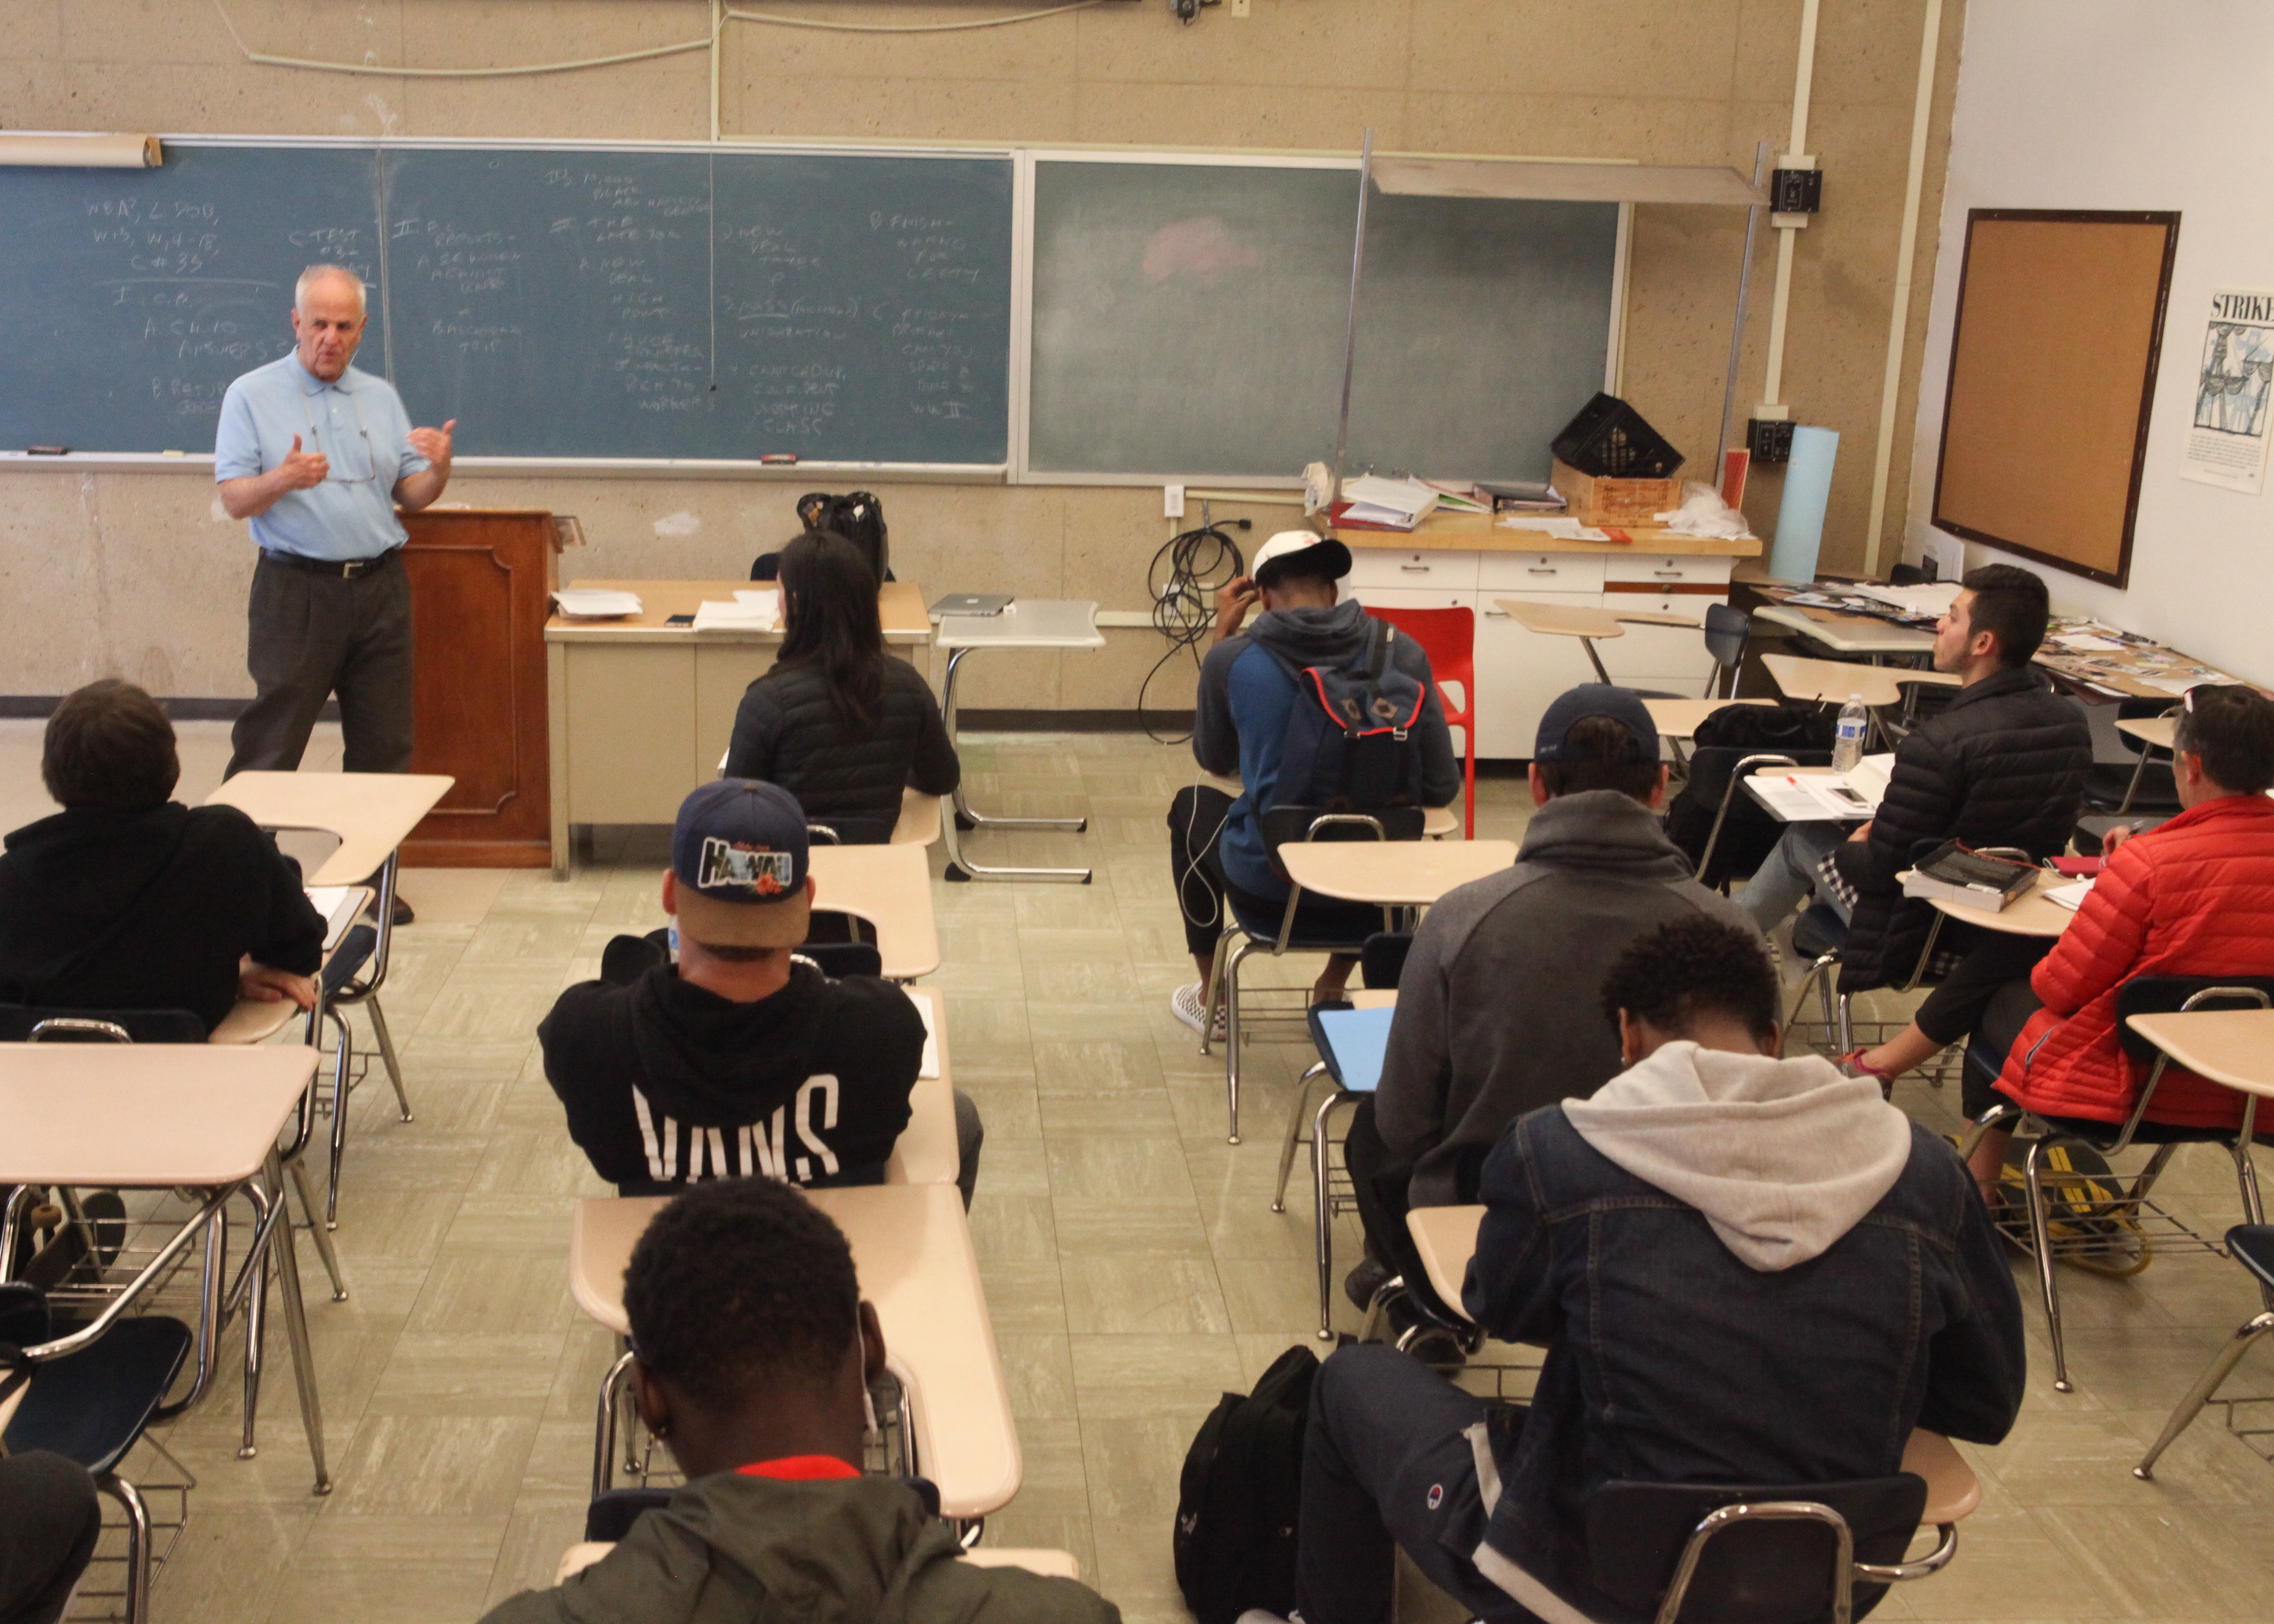 Professor William Shields teaches his Labor Community Studies class on April 18 at City College's Ocean Campus. The Labor Community Studies class, LBCS 70B, is one of the few classes that are at stake of being cut at City College. . (Photo by Cassie Ordonio/Special to The Guardsman)